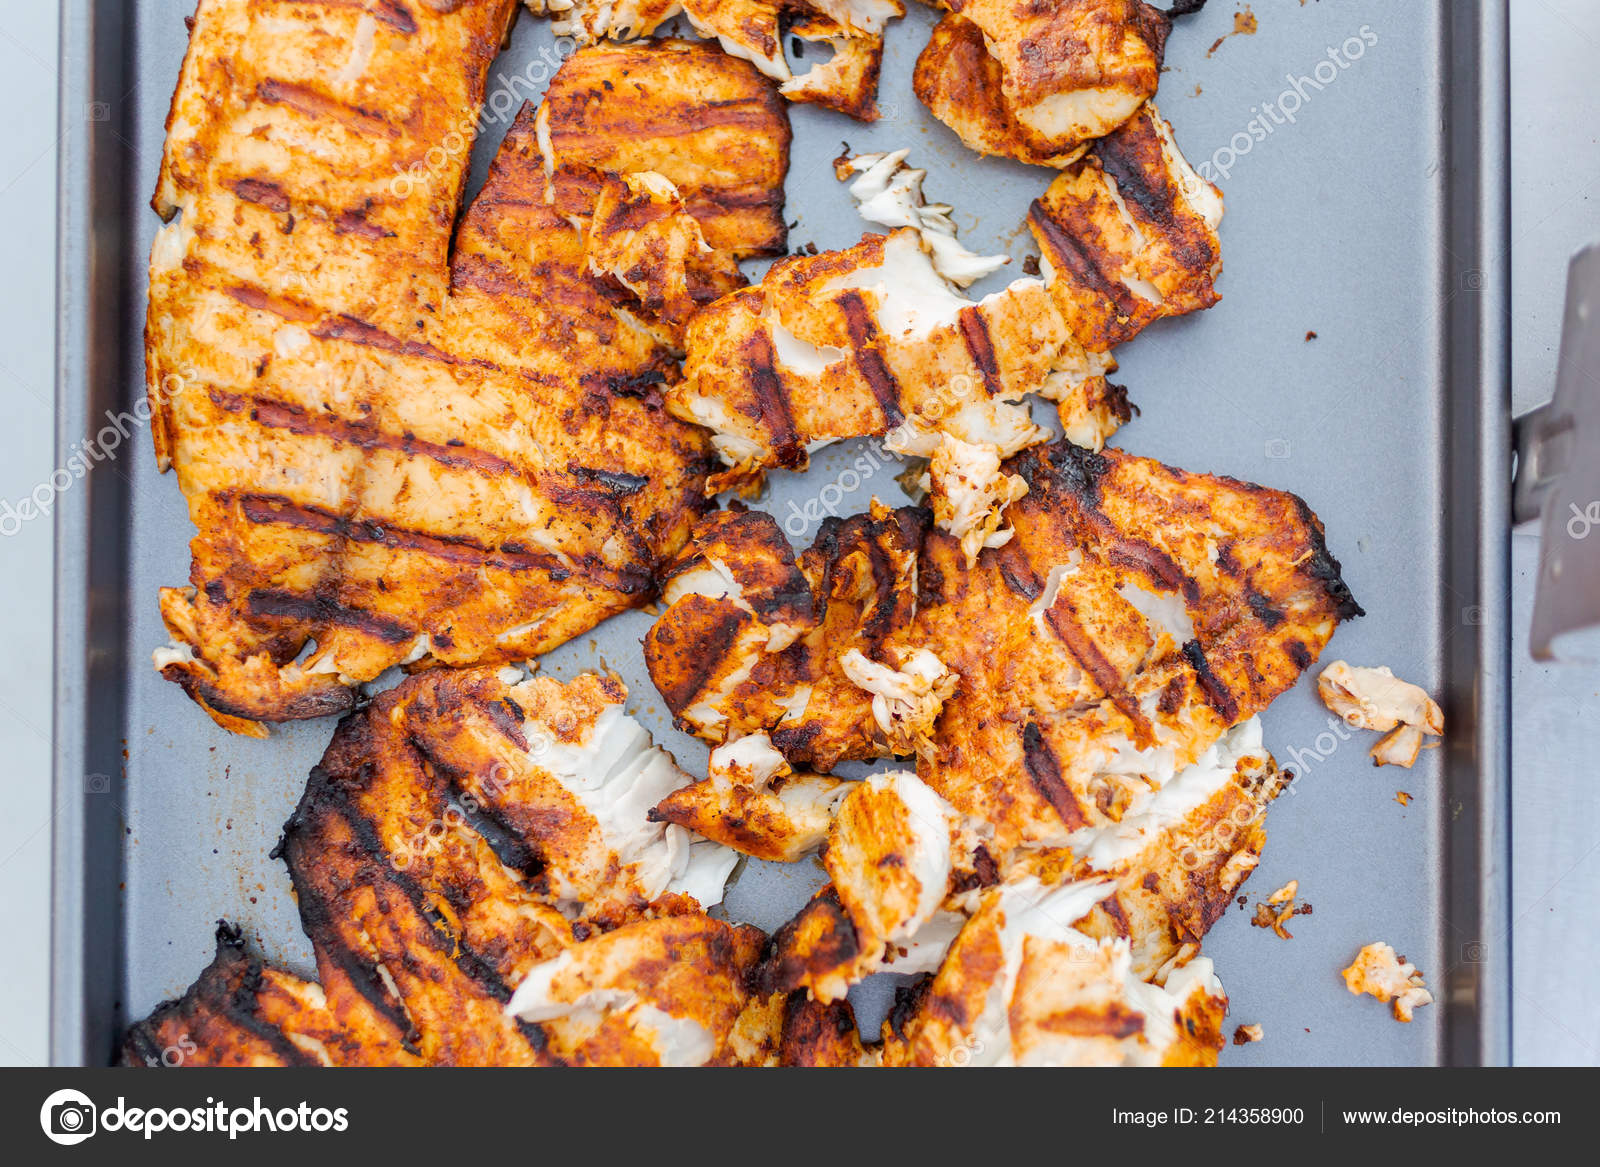 Grilling Cod Fish Tacos Outdoor Gas Grill Stock Photo